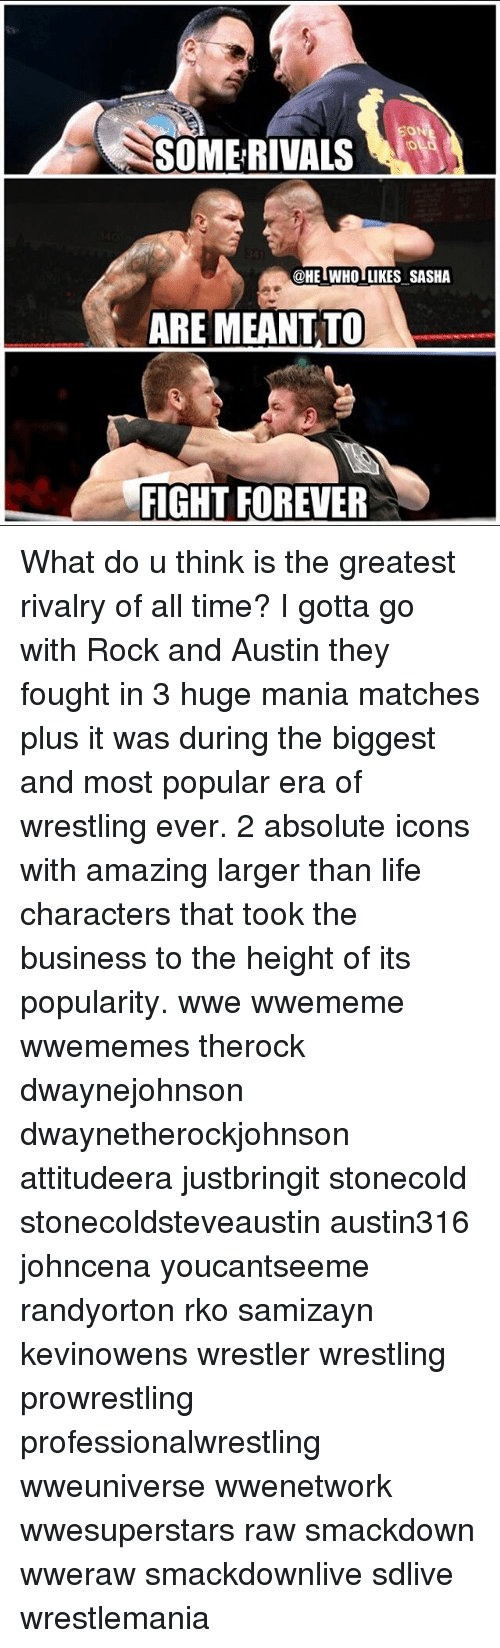 rko: SOMERIVALS  @HE WHO LIKES SASHA  ARE MEANT.TO  FIGHT FOREVER What do u think is the greatest rivalry of all time? I gotta go with Rock and Austin they fought in 3 huge mania matches plus it was during the biggest and most popular era of wrestling ever. 2 absolute icons with amazing larger than life characters that took the business to the height of its popularity. wwe wwememe wwememes therock dwaynejohnson dwaynetherockjohnson attitudeera justbringit stonecold stonecoldsteveaustin austin316 johncena youcantseeme randyorton rko samizayn kevinowens wrestler wrestling prowrestling professionalwrestling wweuniverse wwenetwork wwesuperstars raw smackdown wweraw smackdownlive sdlive wrestlemania